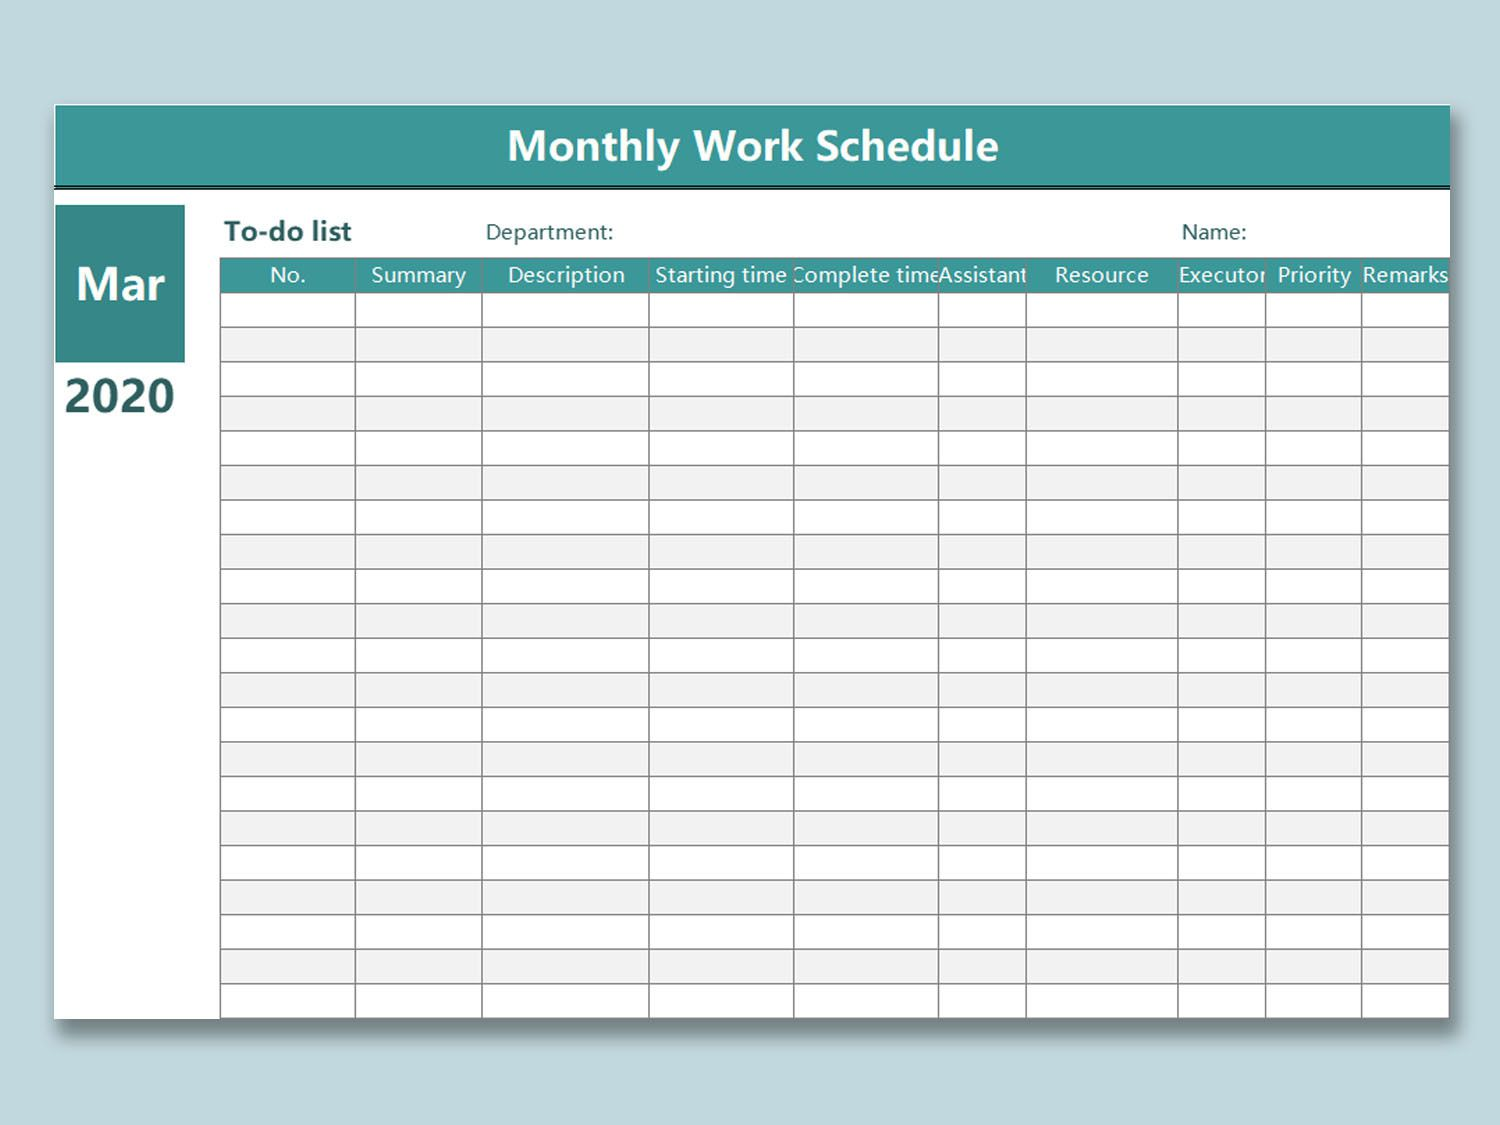 004 Phenomenal Monthly Work Calendar Template Excel Image  Employee Schedule FreeFull